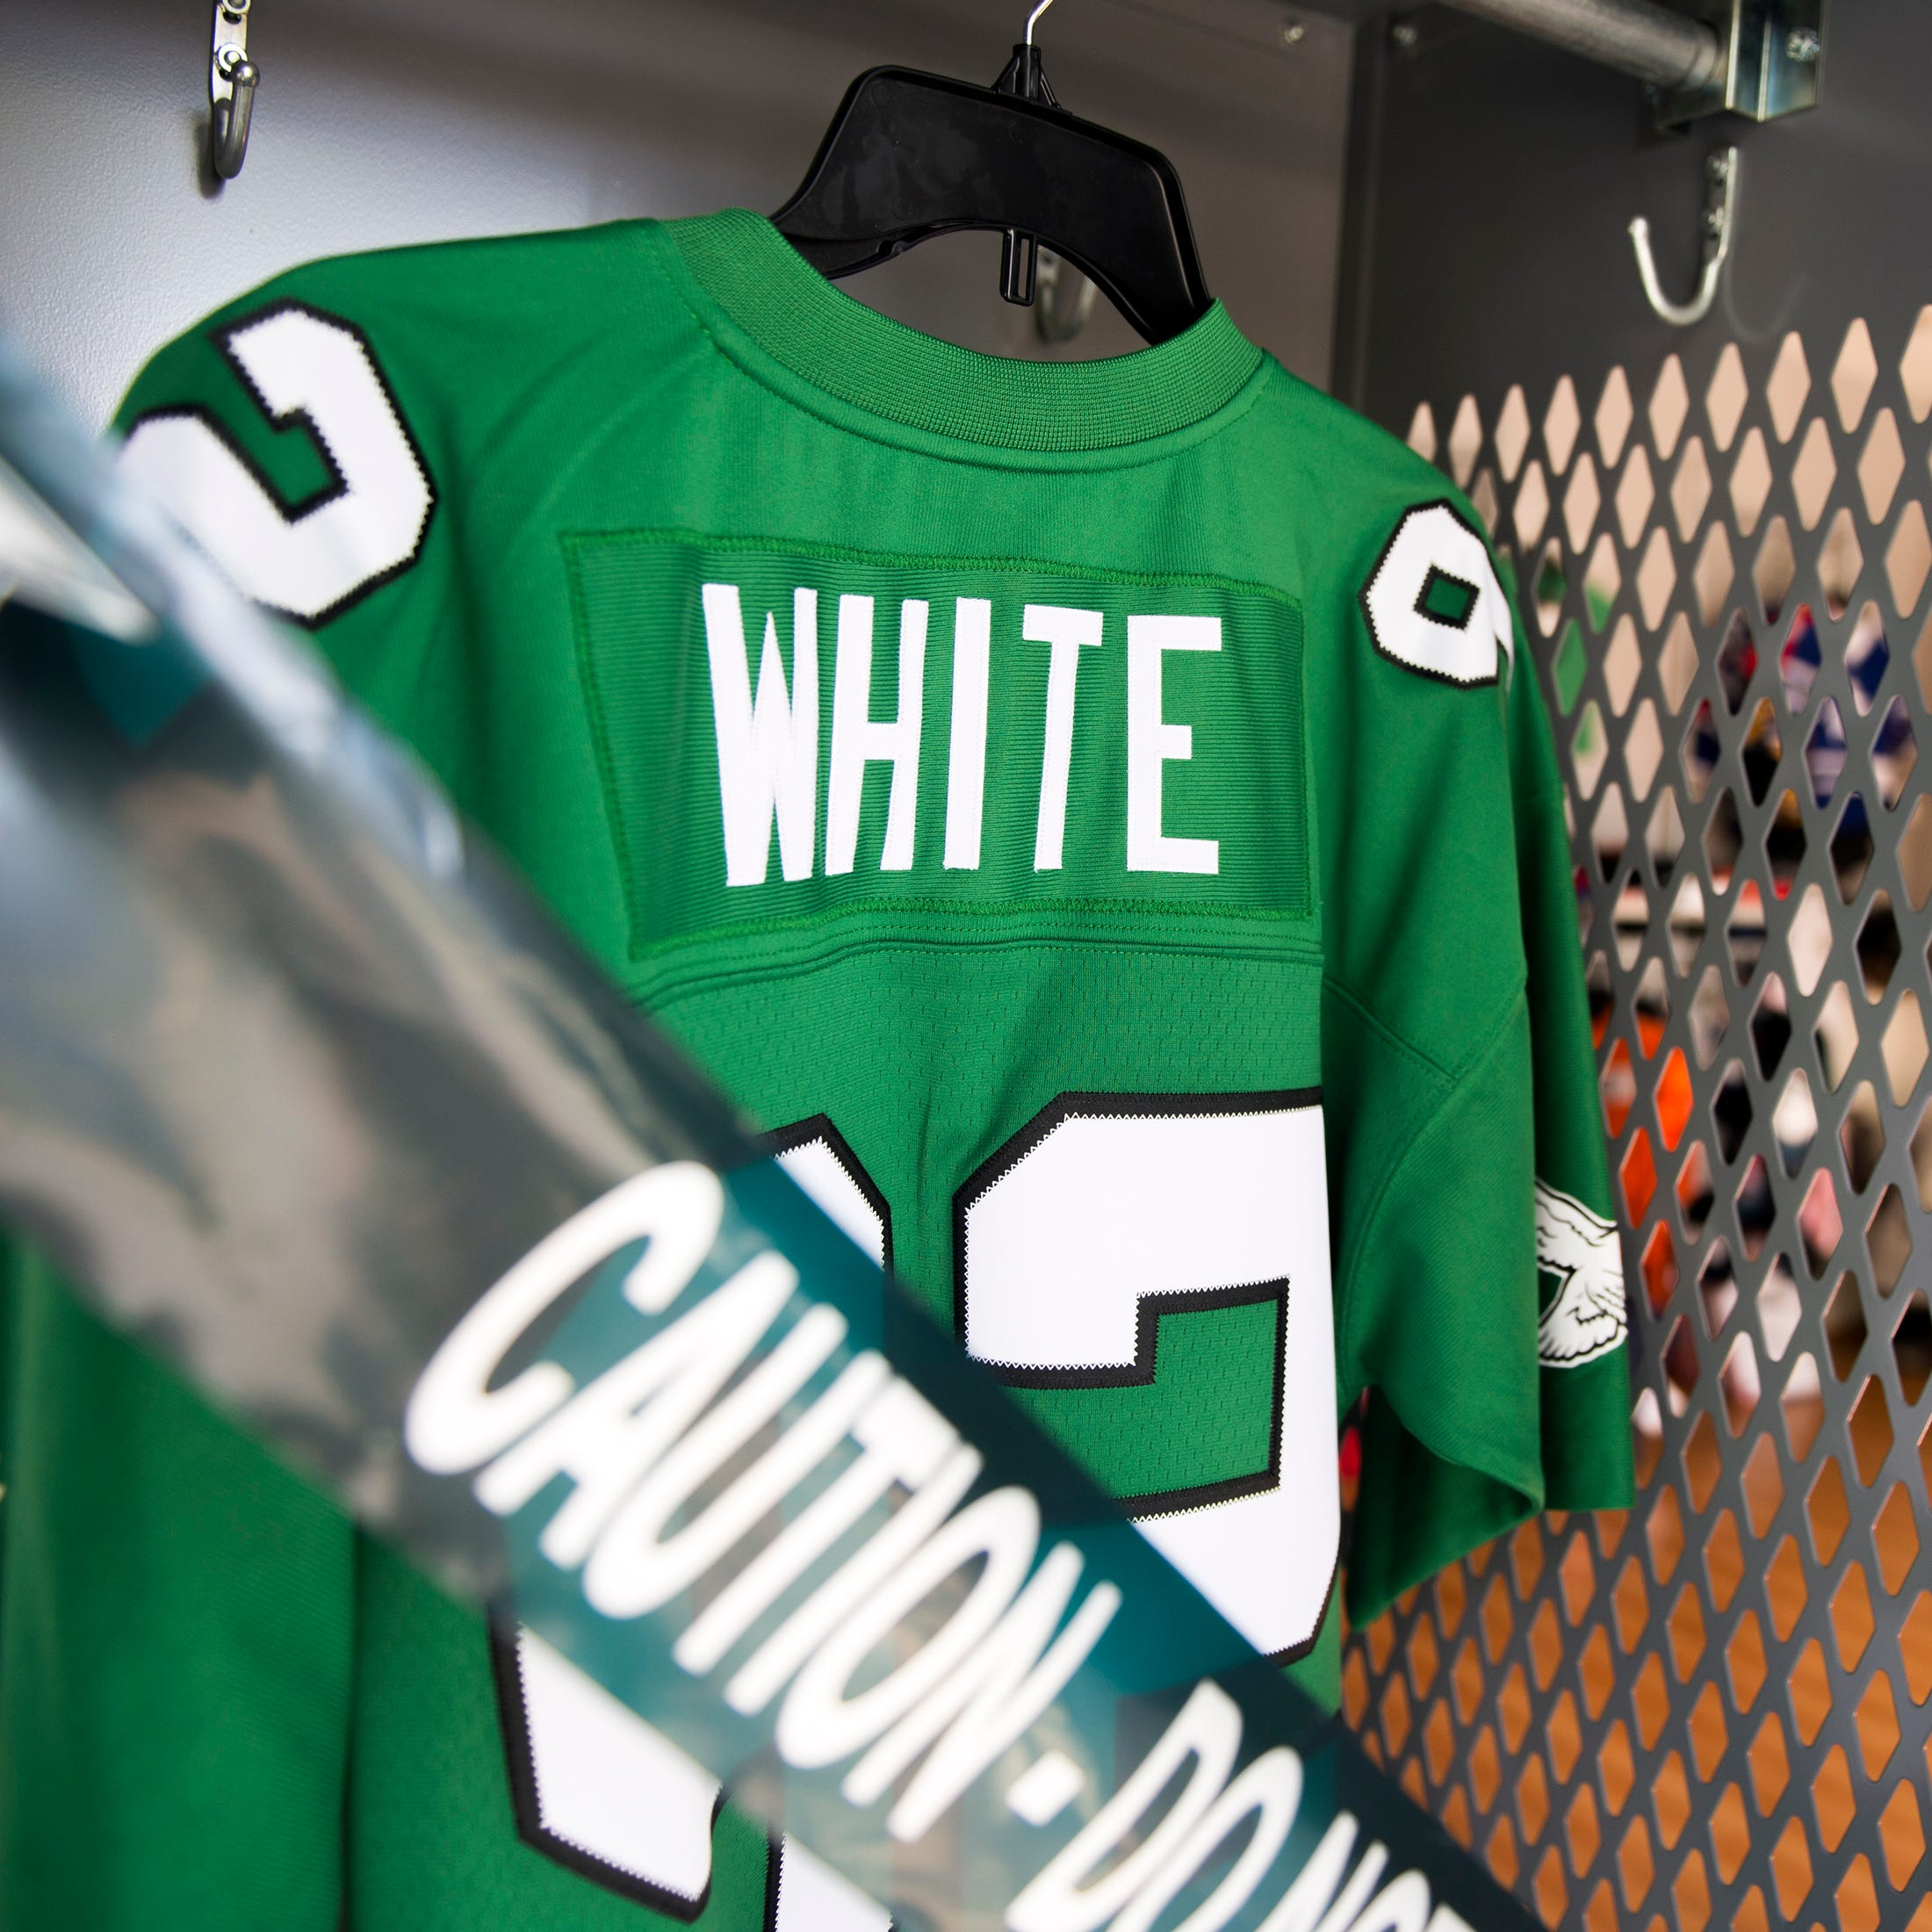 Must-have Eagles gear for tailgating and holiday gift-giving